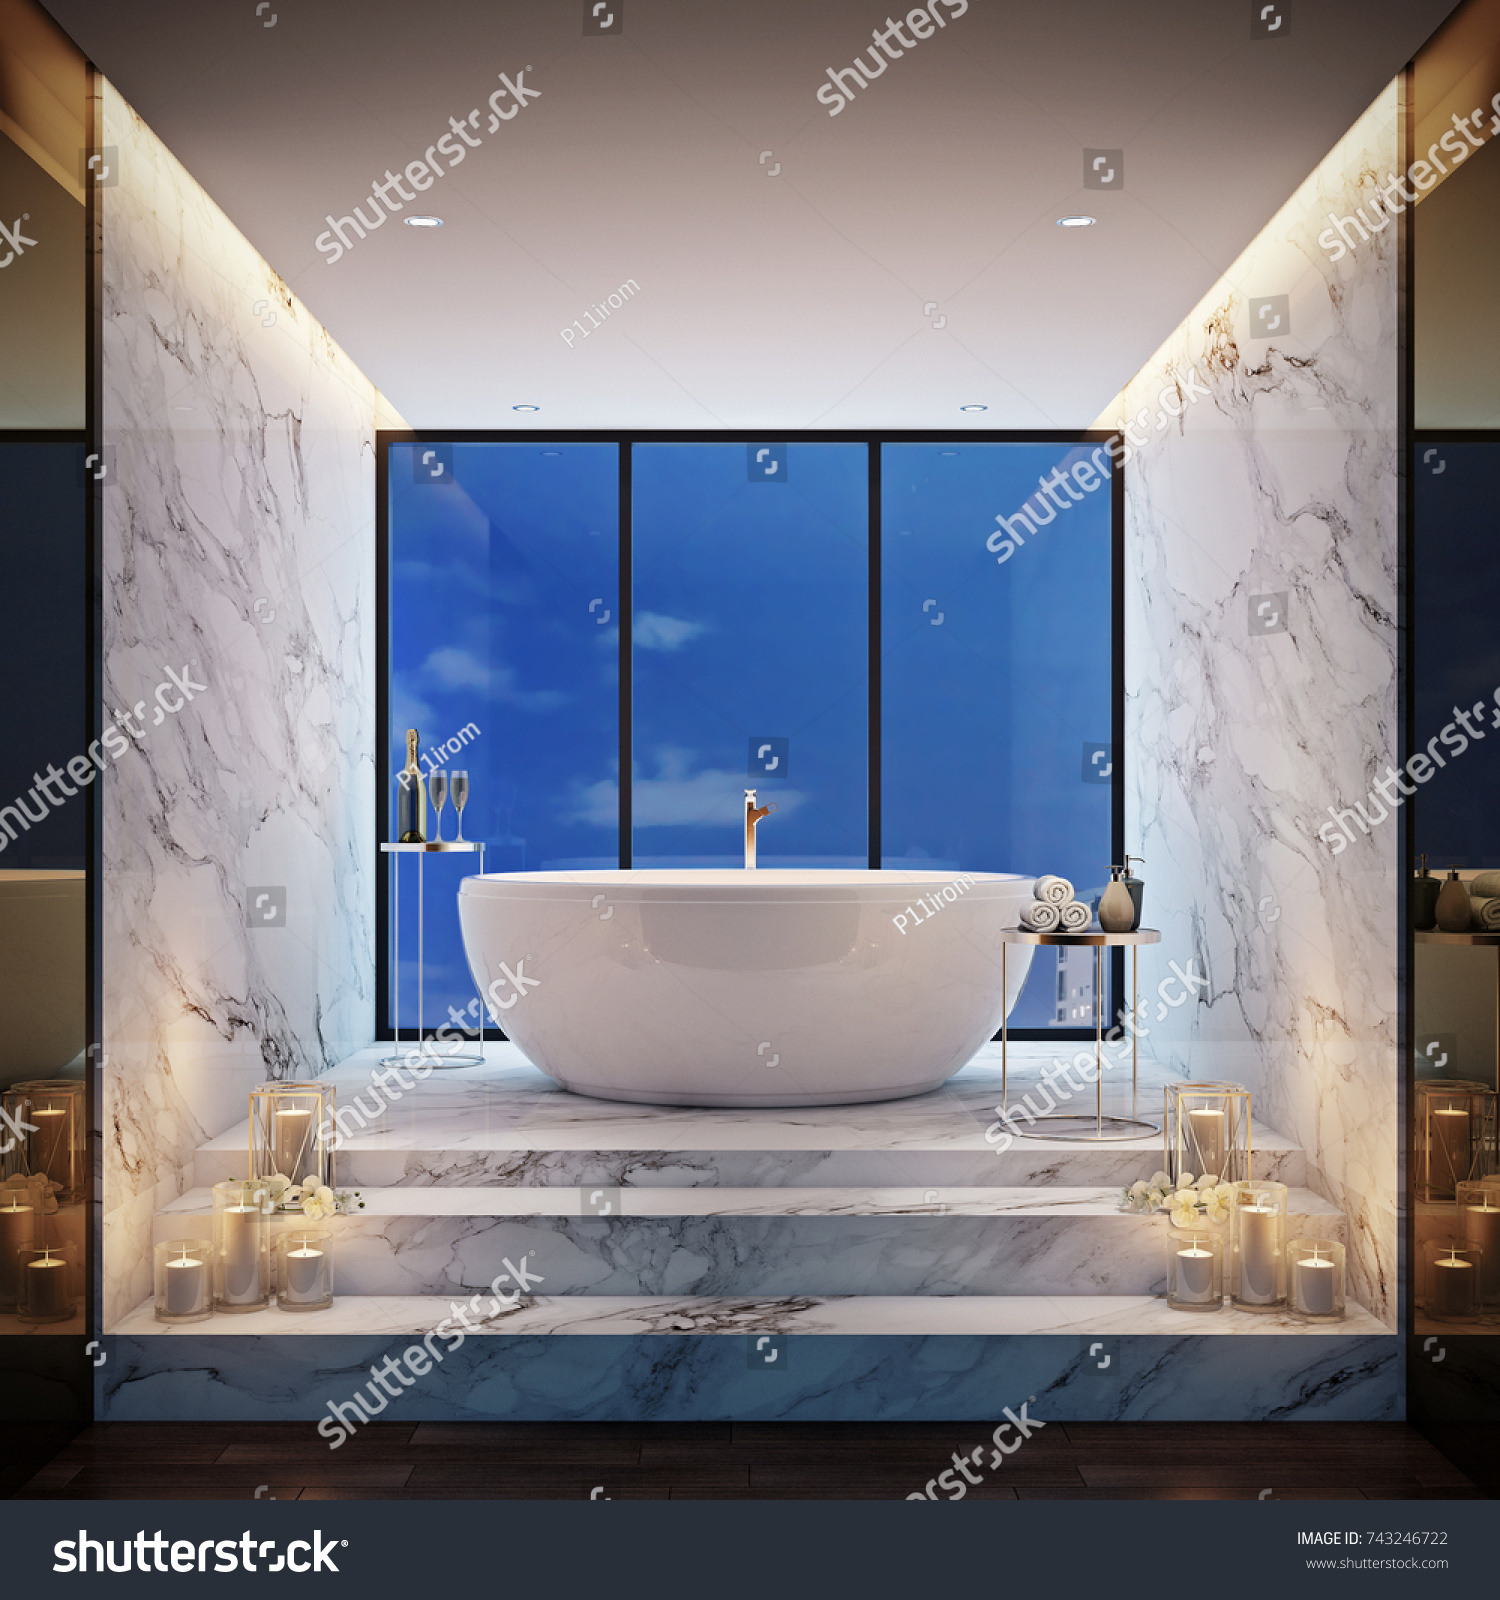 Luxury Jacuzzi Bath Take Sky View Stock Illustration 743246722 ...